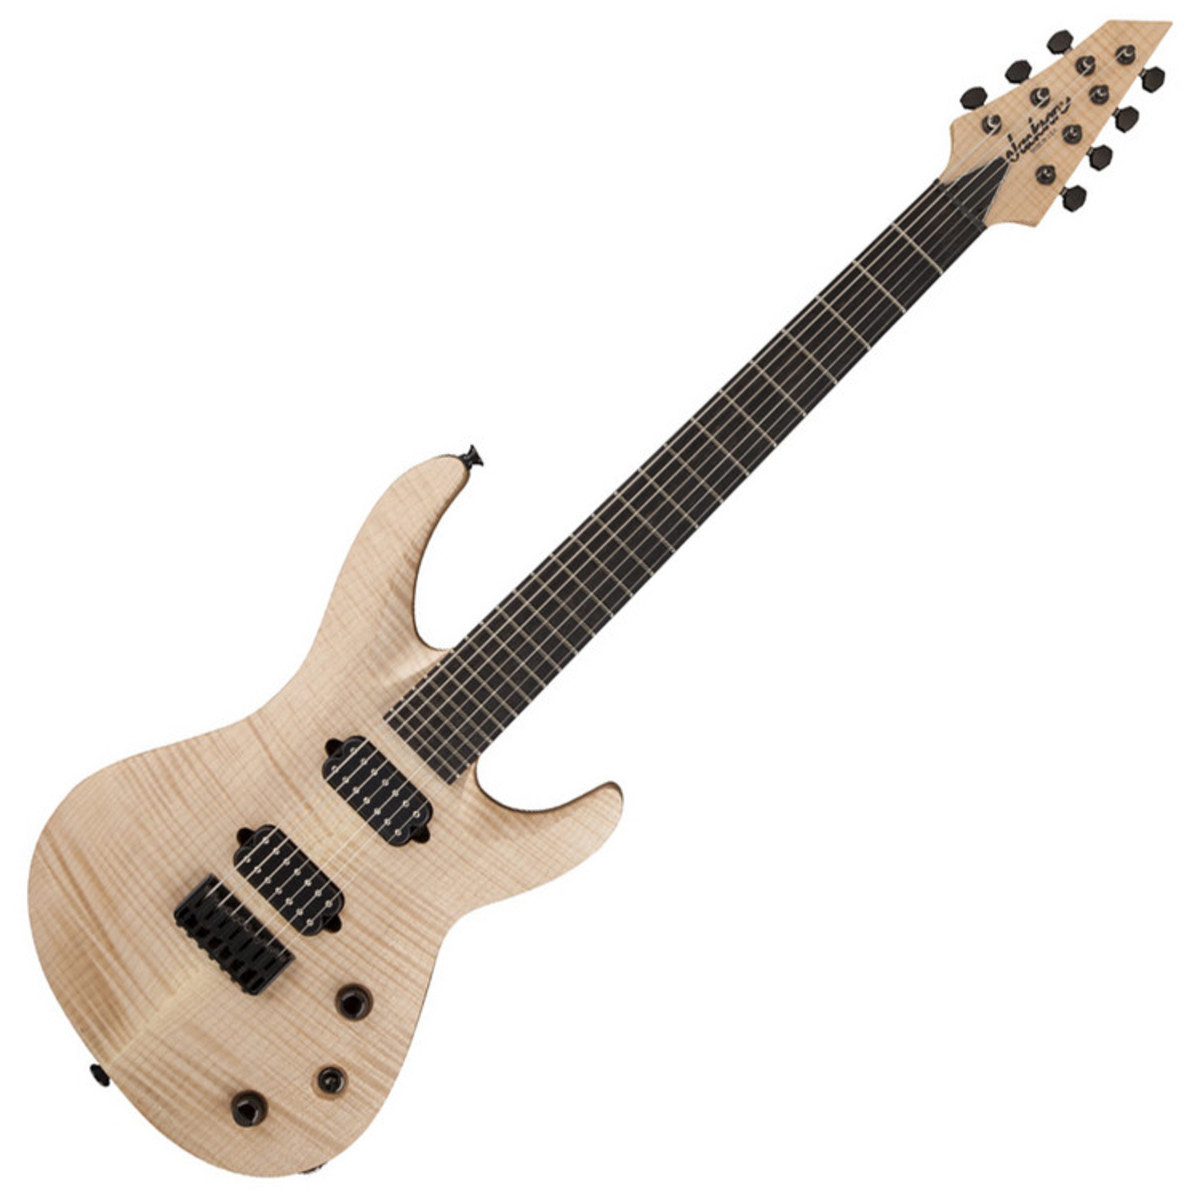 jackson usa select b7 7 string electric guitar natural oil at gear4music. Black Bedroom Furniture Sets. Home Design Ideas